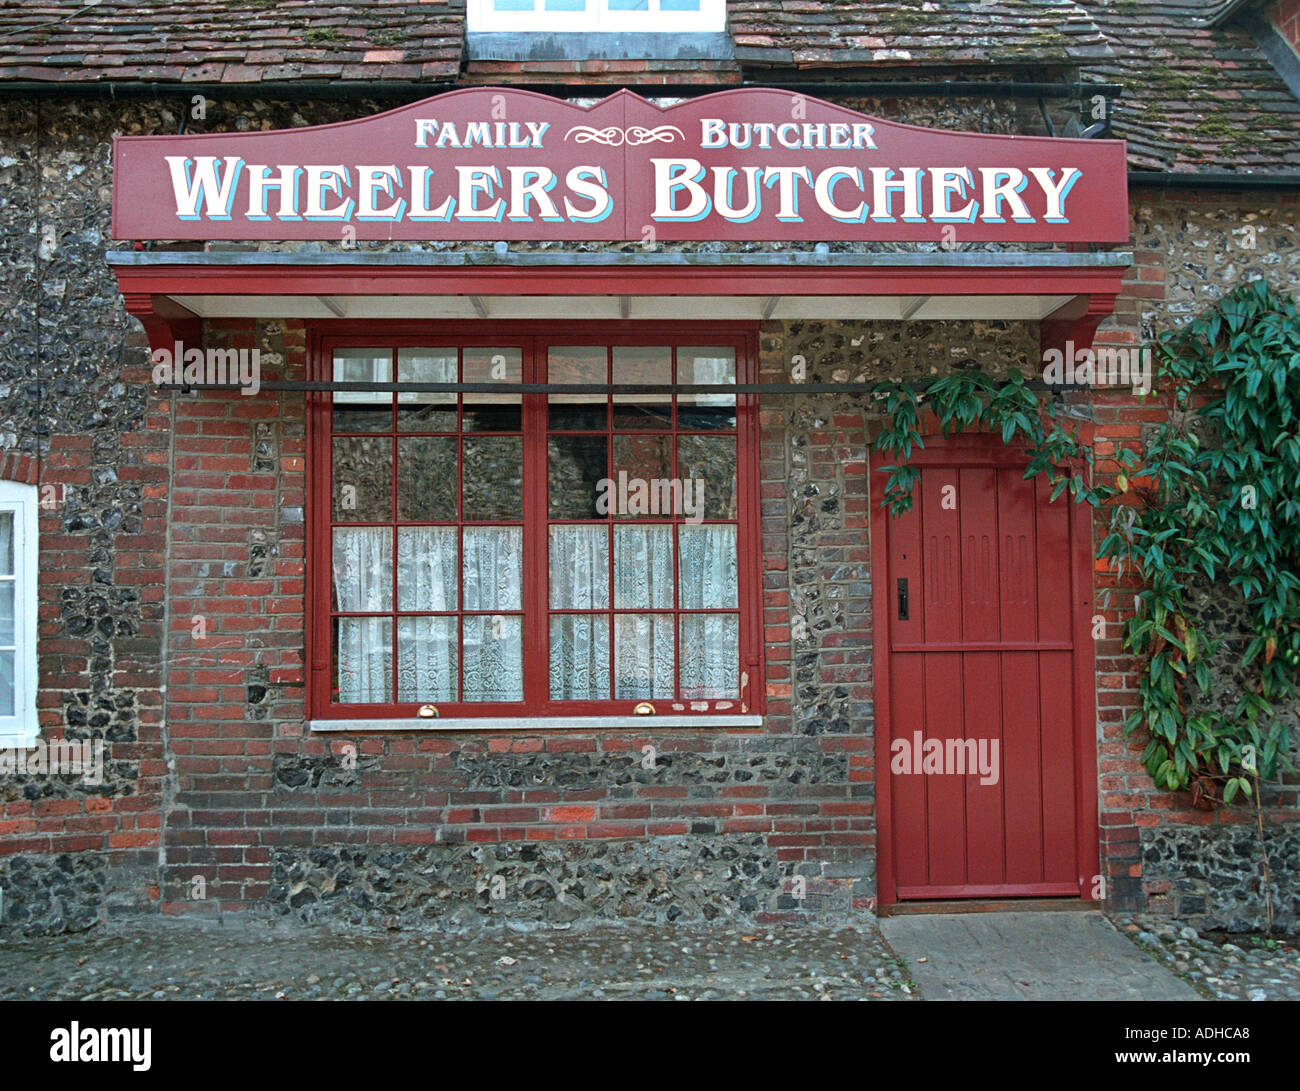 Local butcher in an English village scene of many films and TV shows - Stock Image